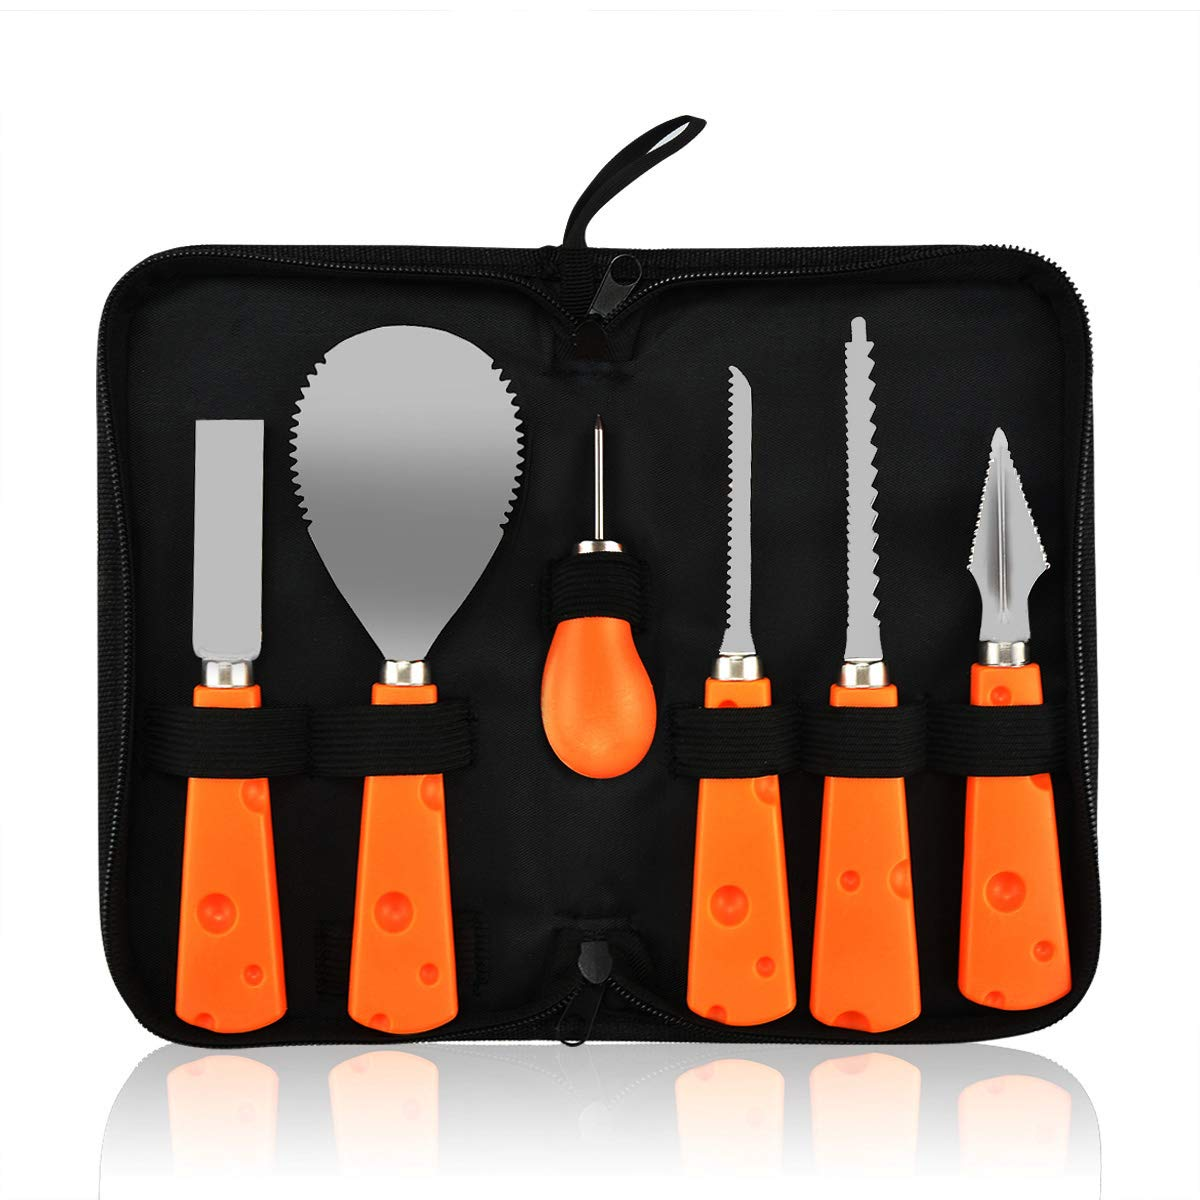 BOENFU Pumpkin Carving Tools Kit, Heavy Duty Stainless Steel Pumpkin Tools Easily Carve Sculpt Halloween Jack-O-Lanterns with Carrying Case (6 Pcs Set)